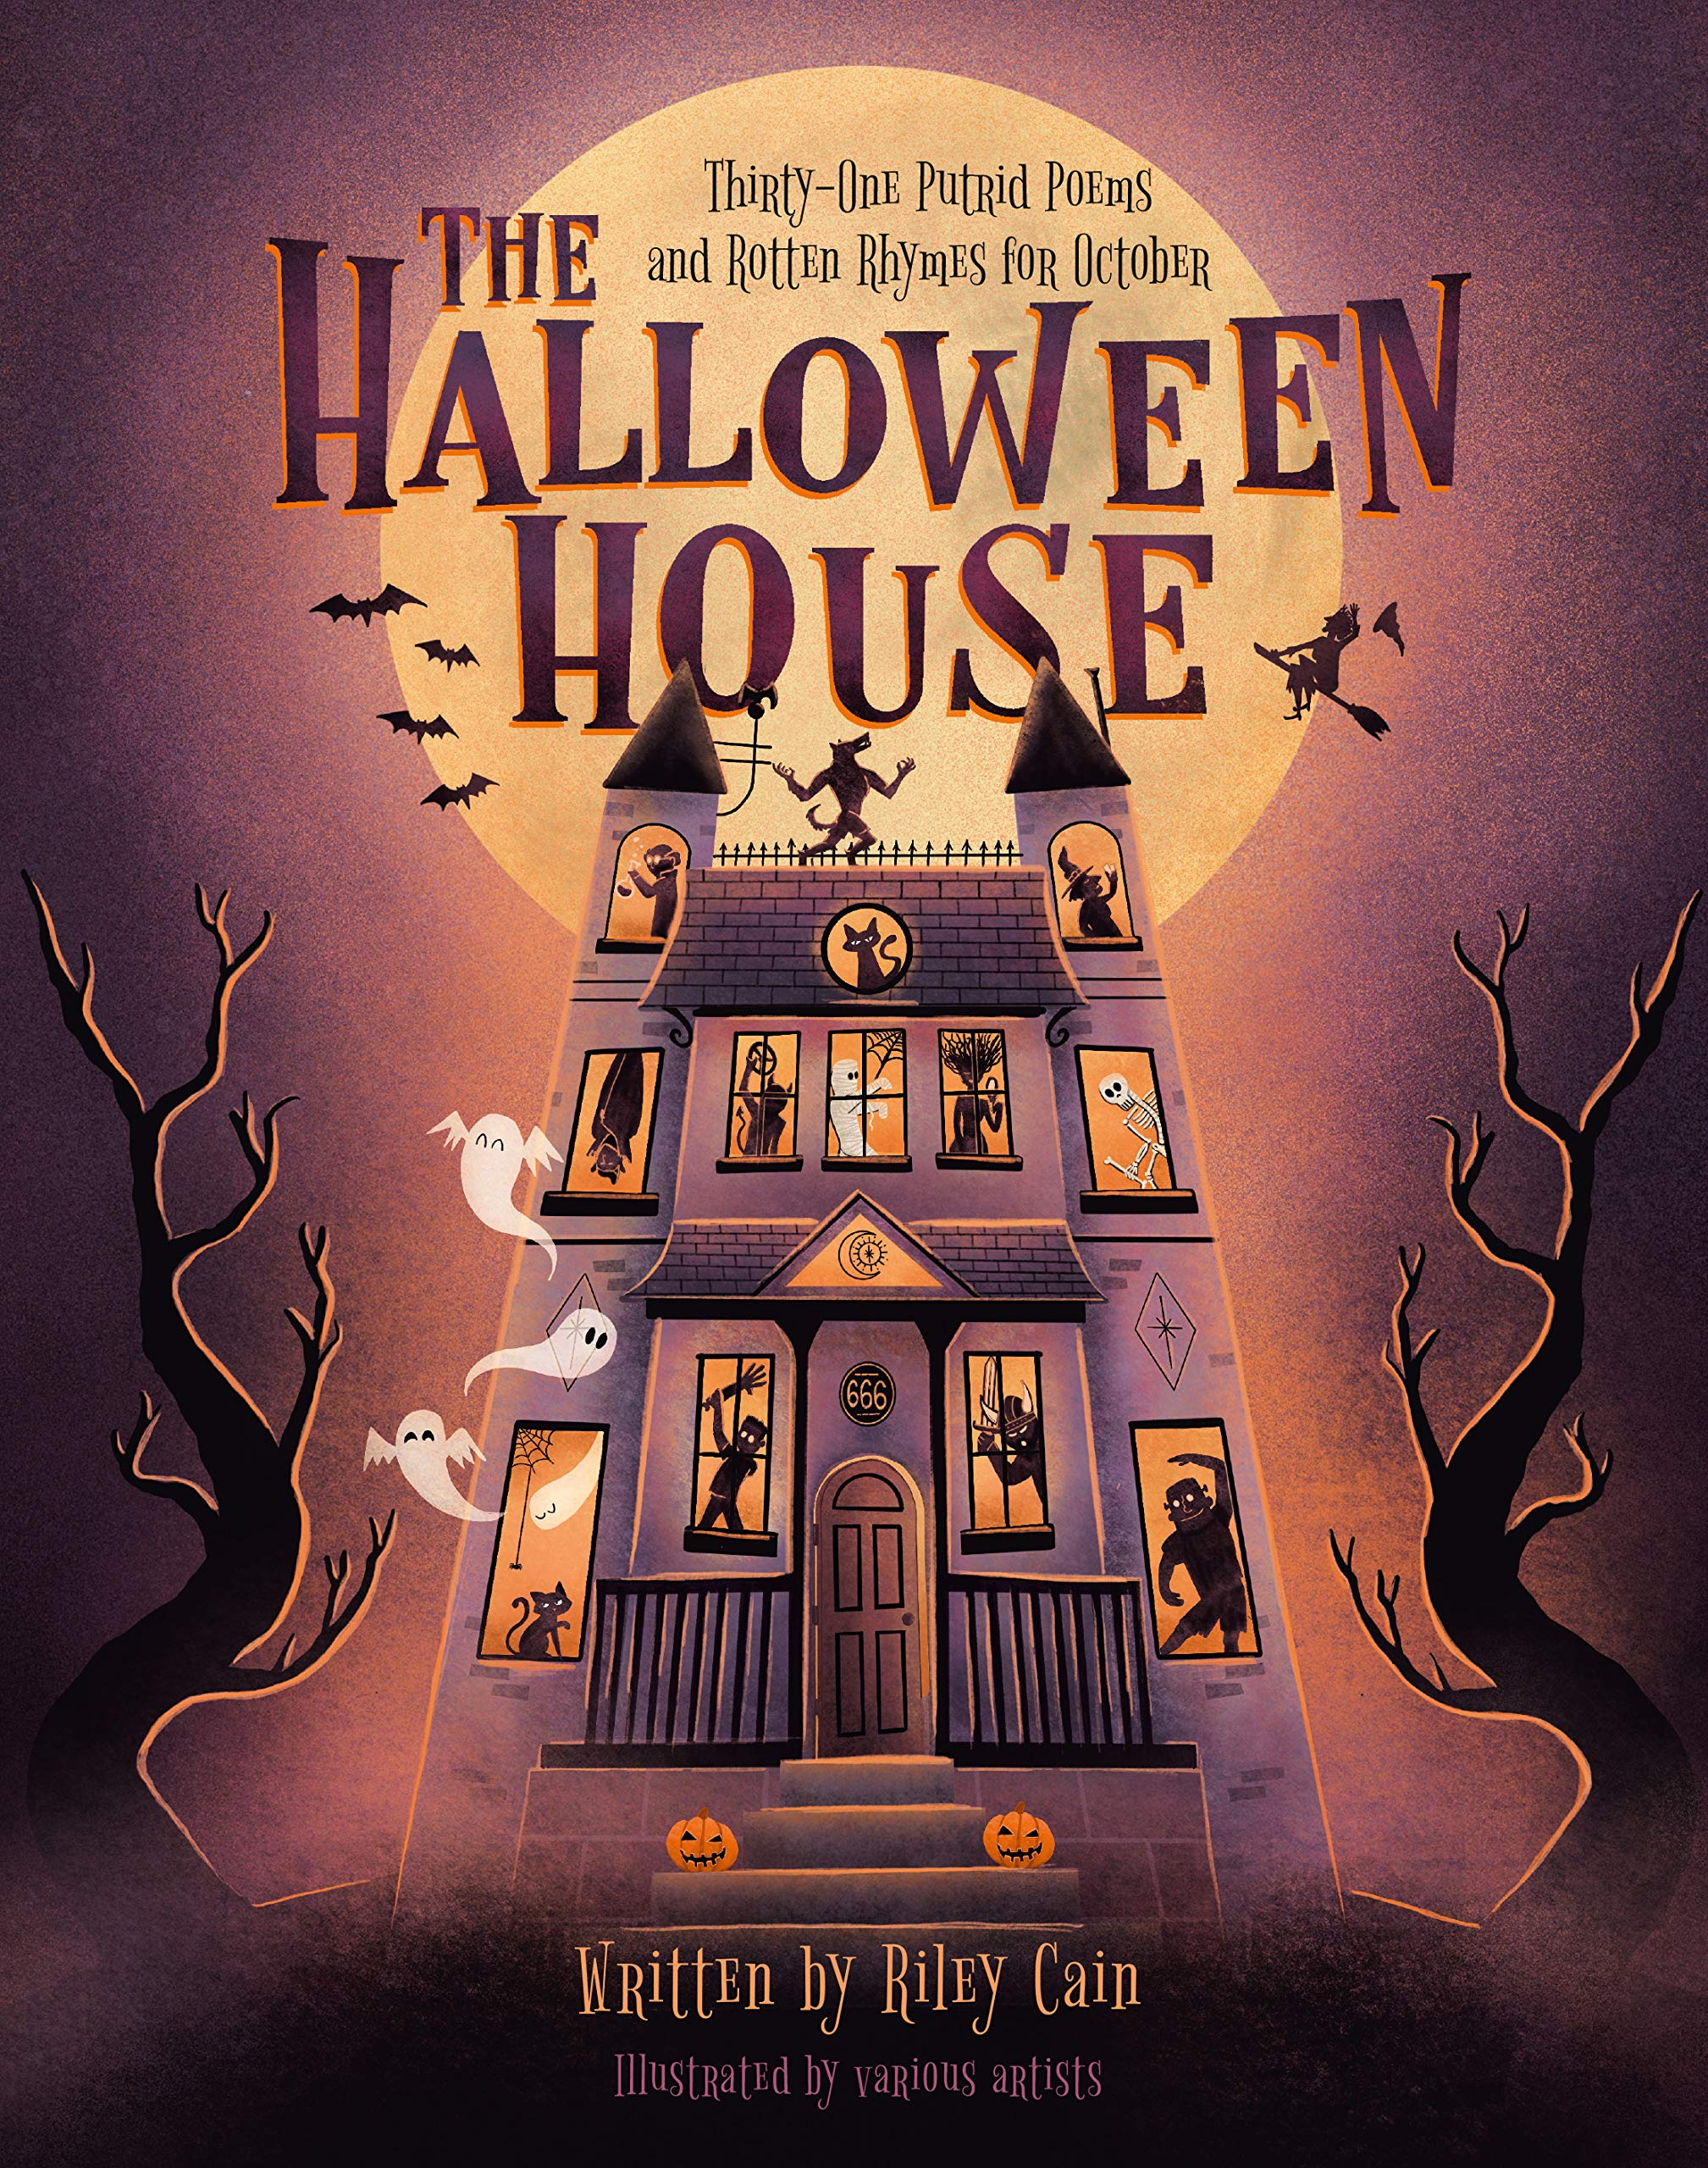 Cains Halloween Haunt 2020 The Halloween House: Thirty one Putrid Poems and Rotten Rhymes for